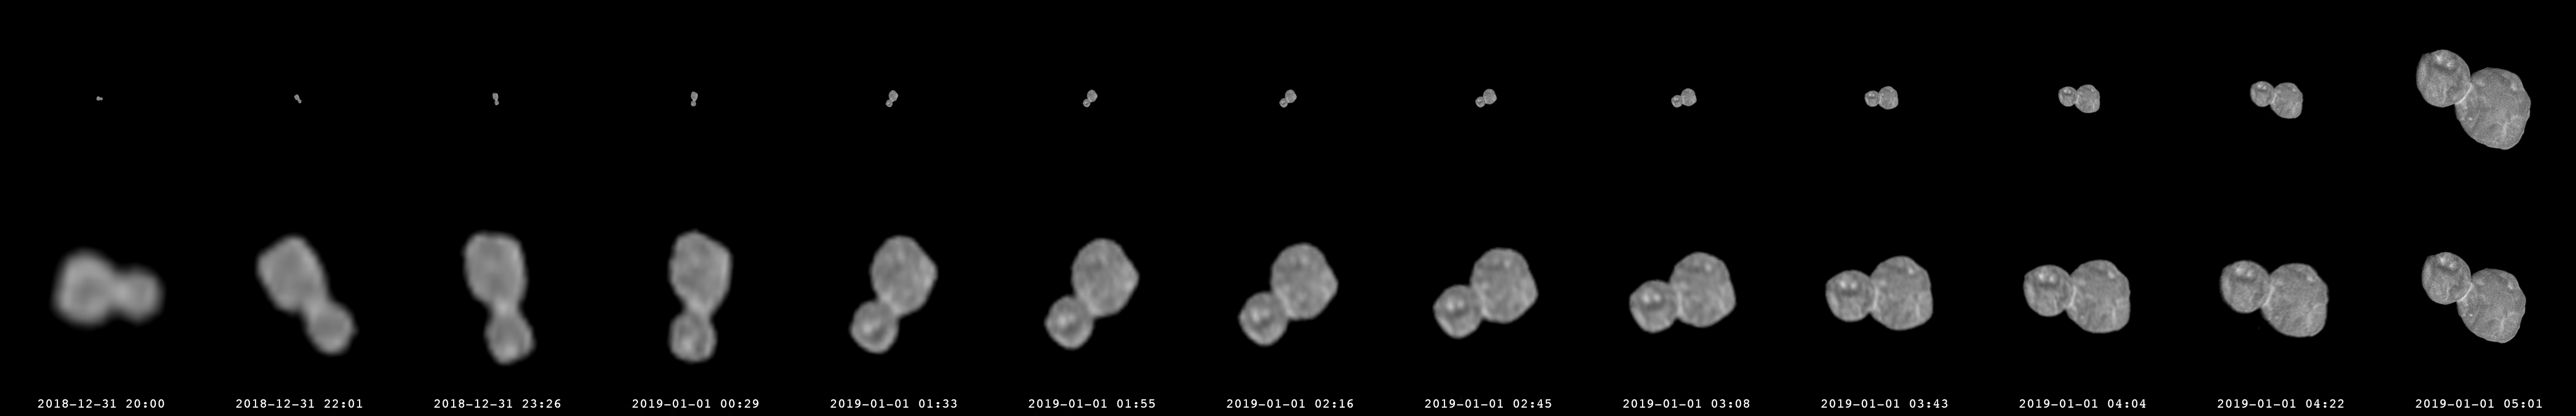 Sequence showing Mu69 growing from dot to fully-resolved object.